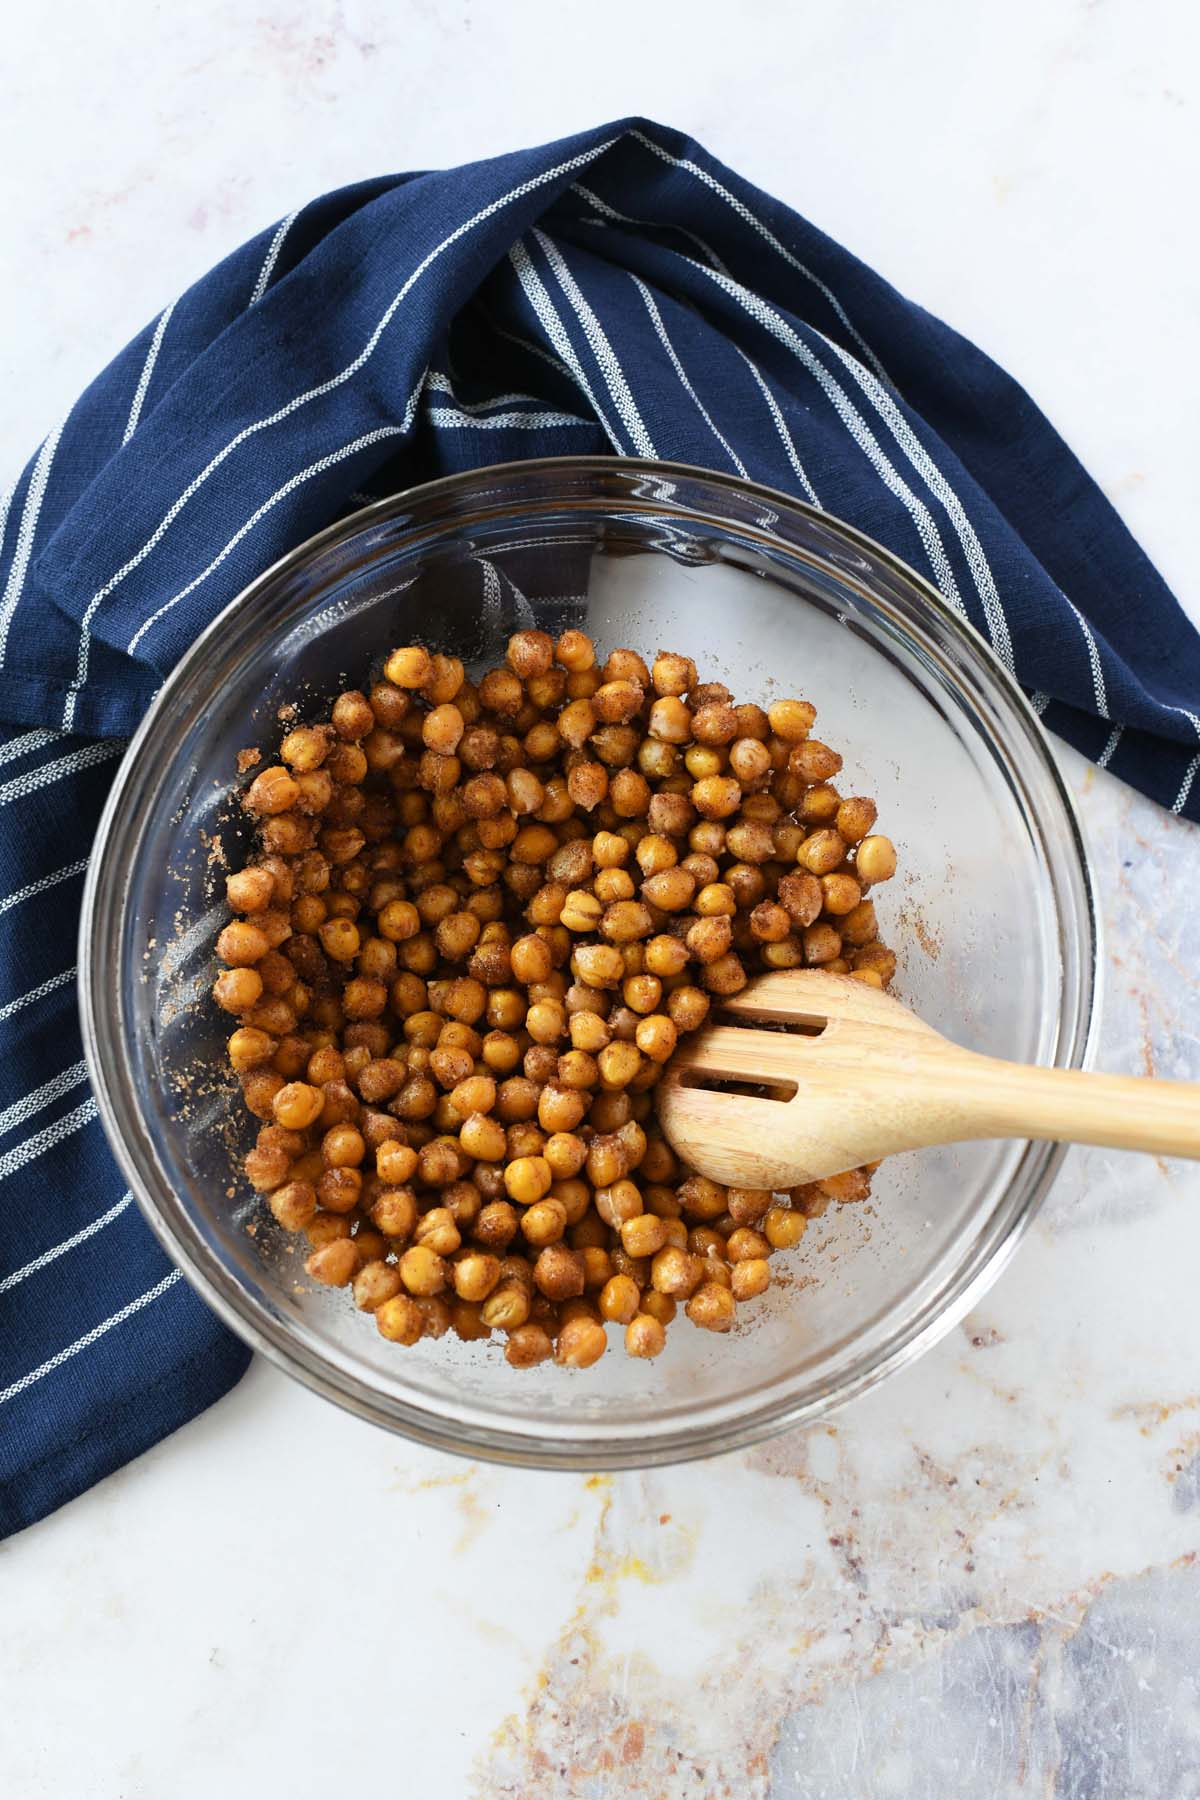 Cinnamon and Sugar chickpeas in a bowl with a spoon.